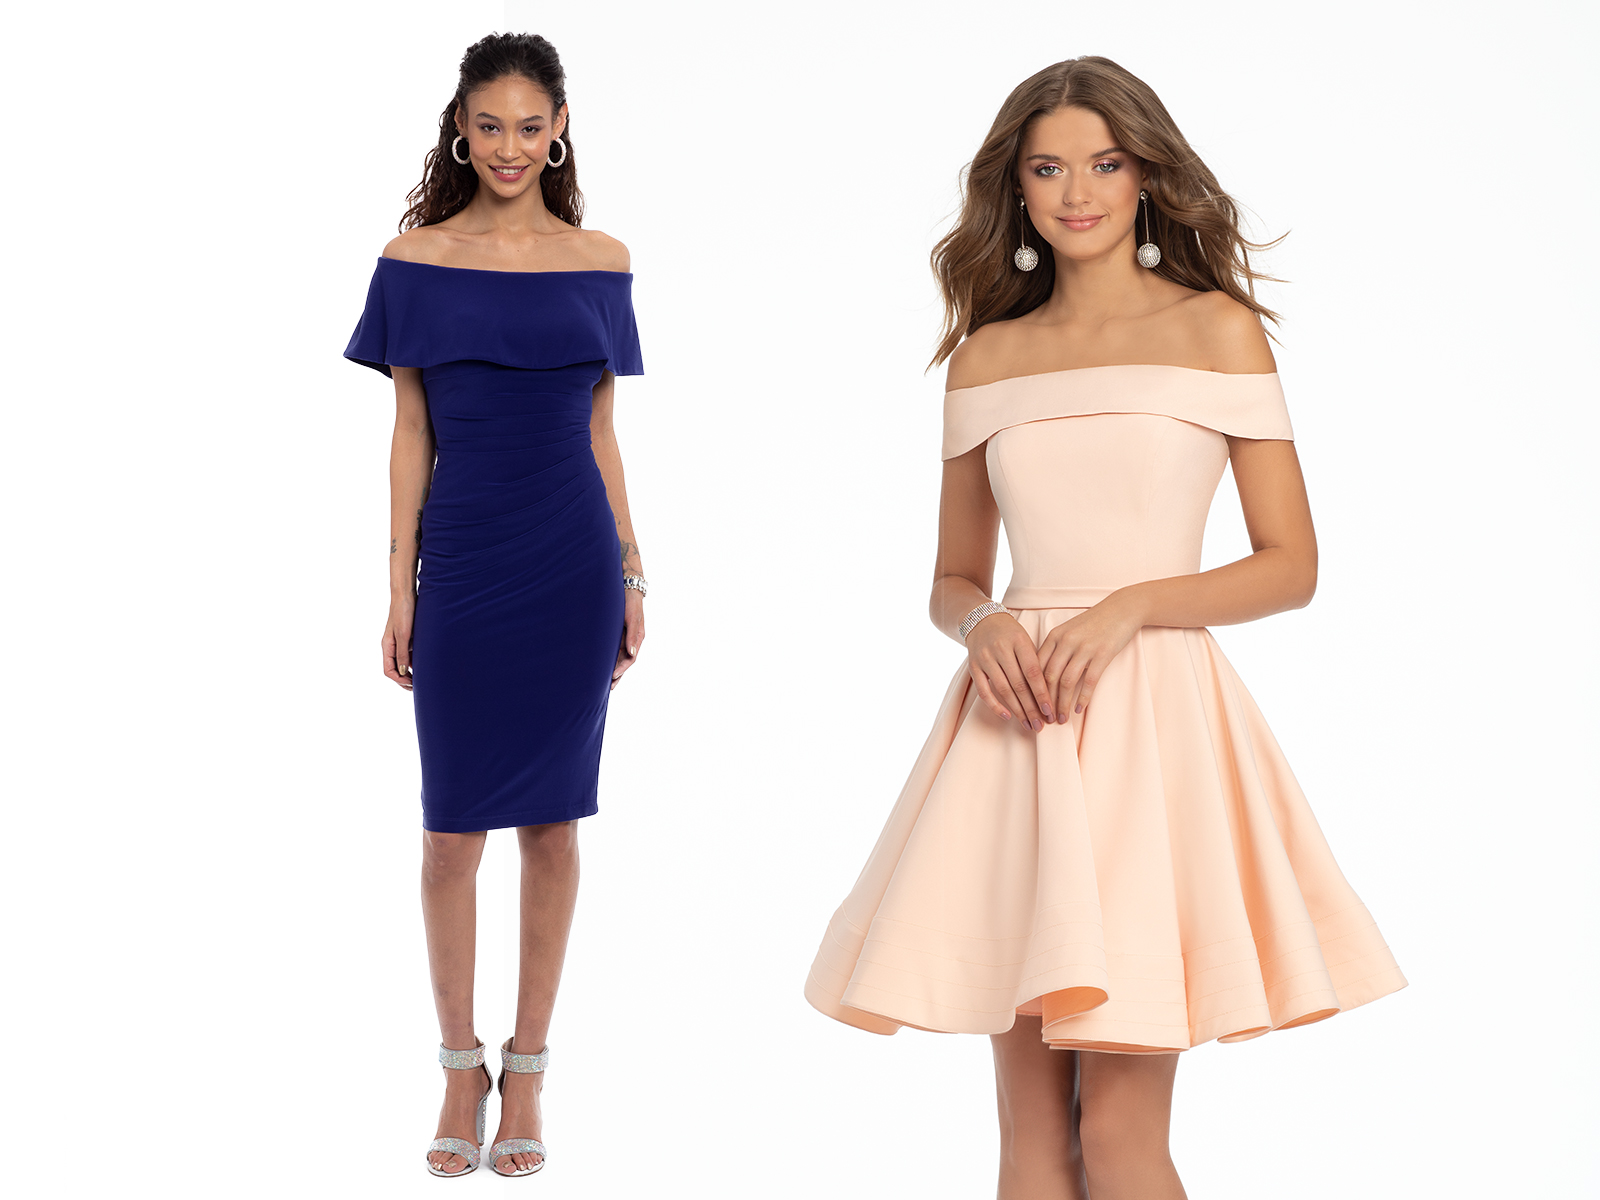 Wedding Guest Dresses For Outdoor I Do S Camille La Vie